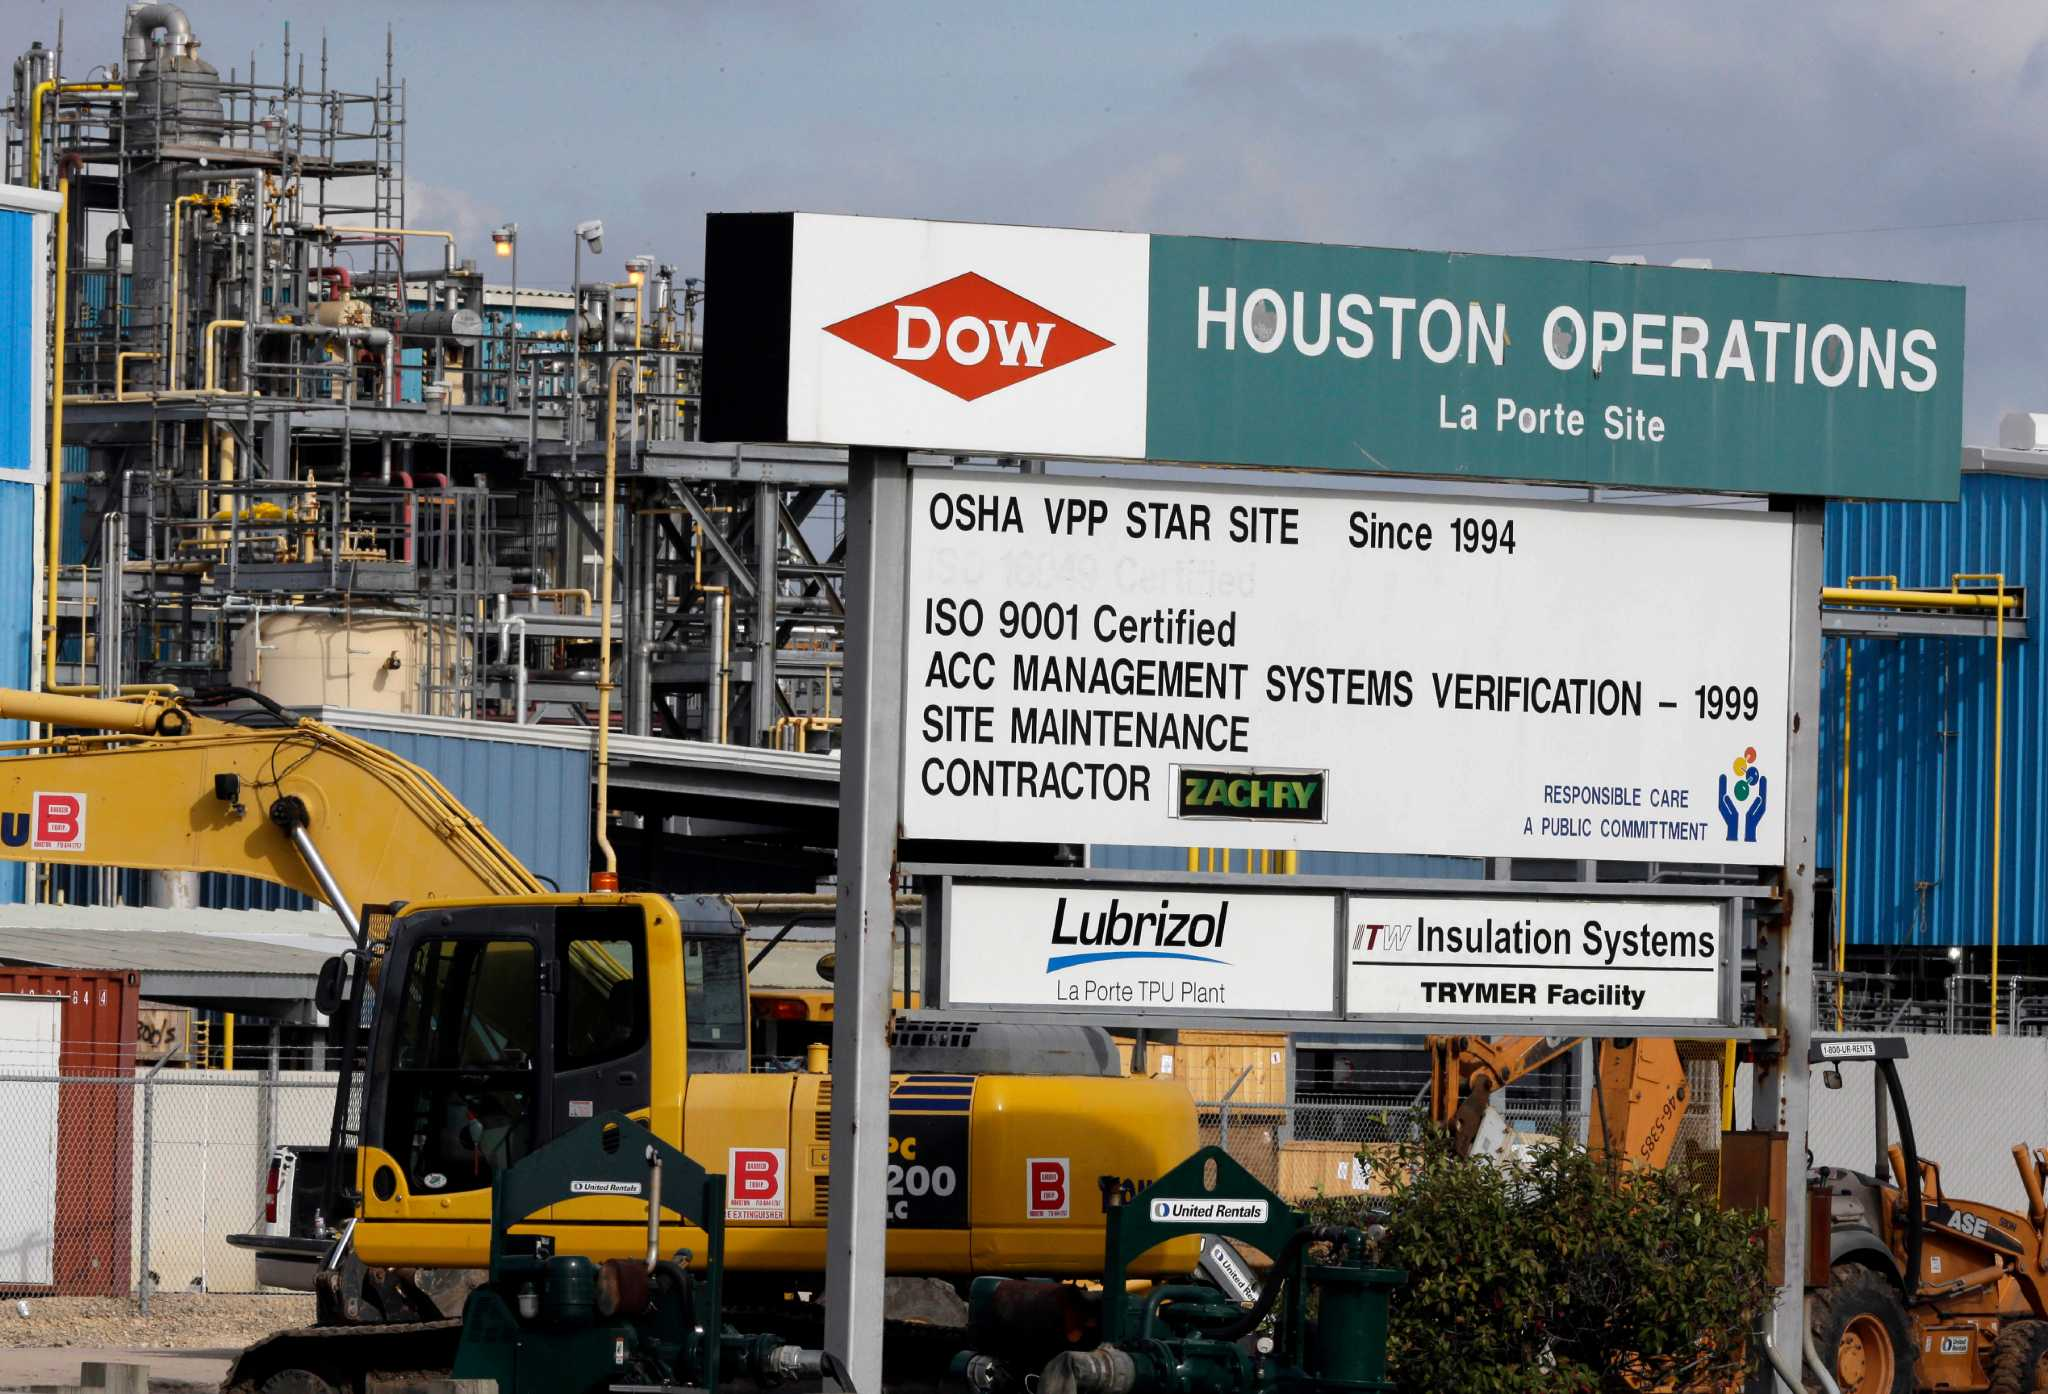 Dow Dupont Hope For Good Chemistry In Merger Houston